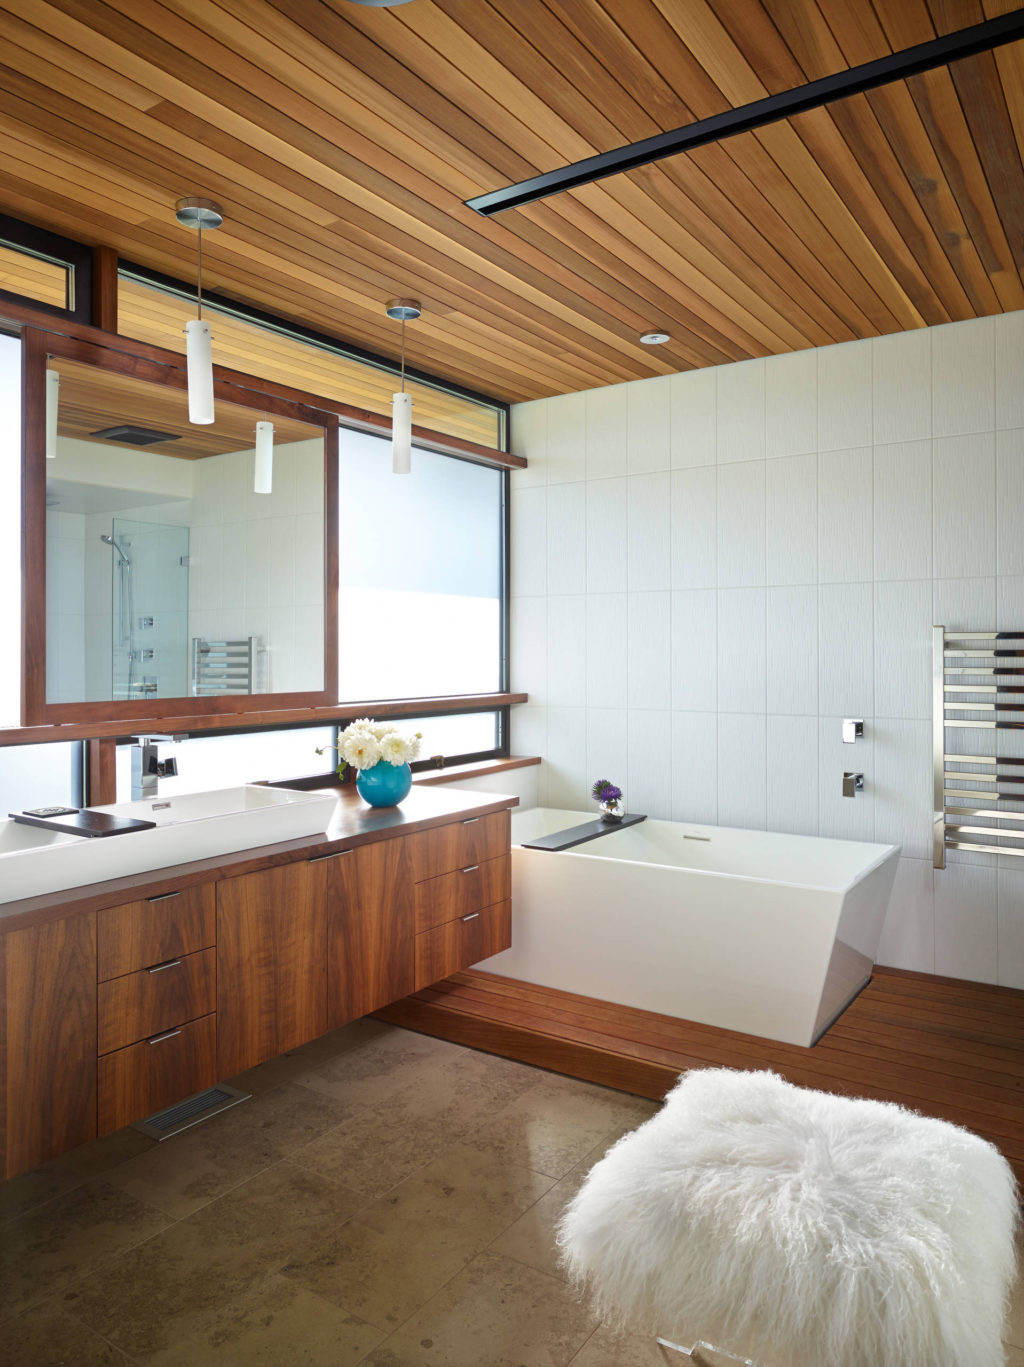 Wood-on-the-Ceiling.-1024x1367 Top 10 Outdated Bathroom Design Trends to Avoid in 2021